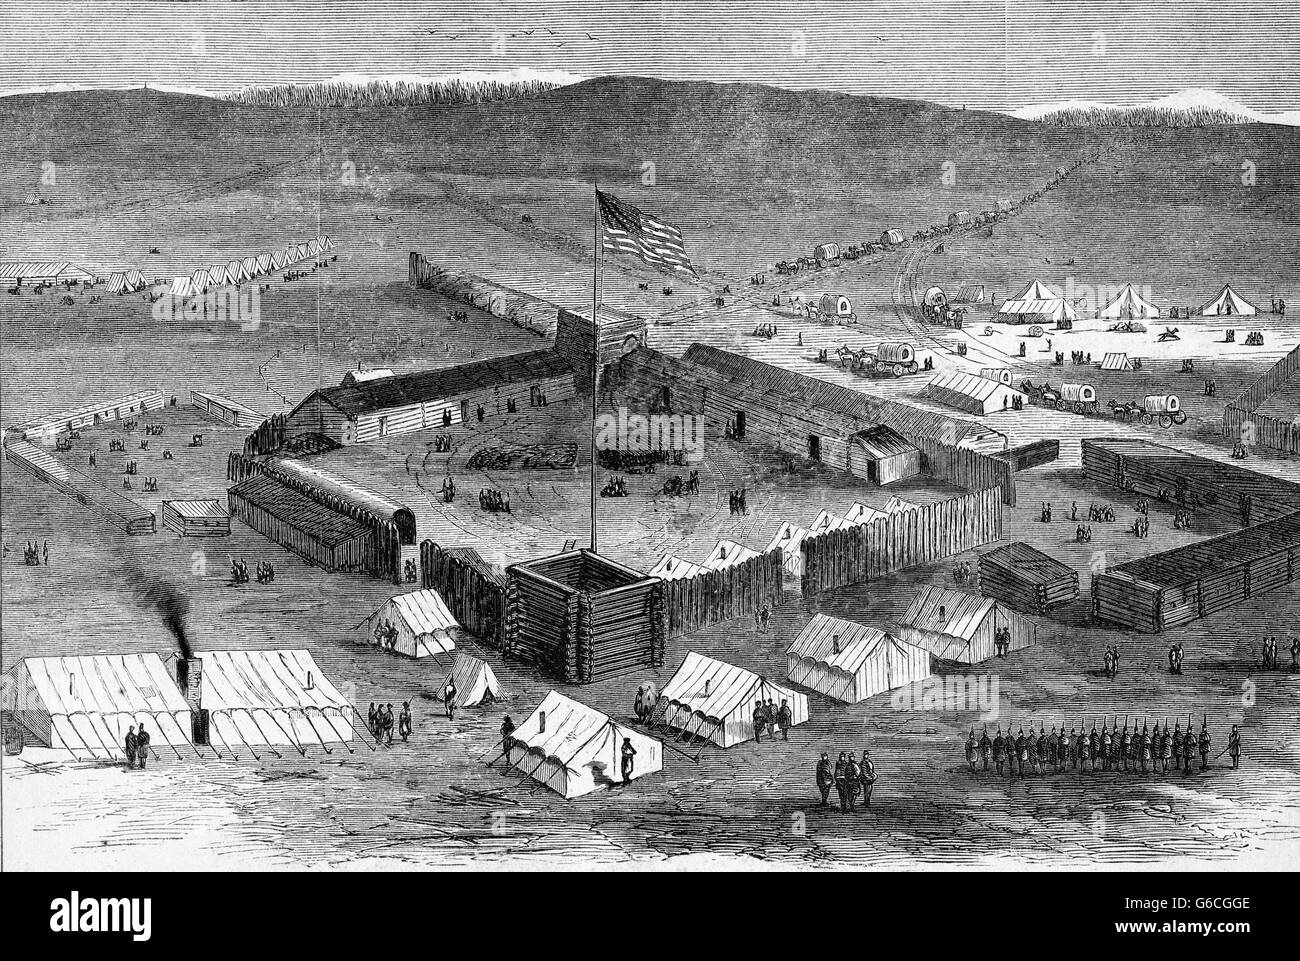 1860s ENGRAVING OF FRONTIER MILITARY FORT WITH WOODEN STOCKADE AND SOLDIERS HOUSE IN TENTS WESTERN FRONTIER USA - Stock Image